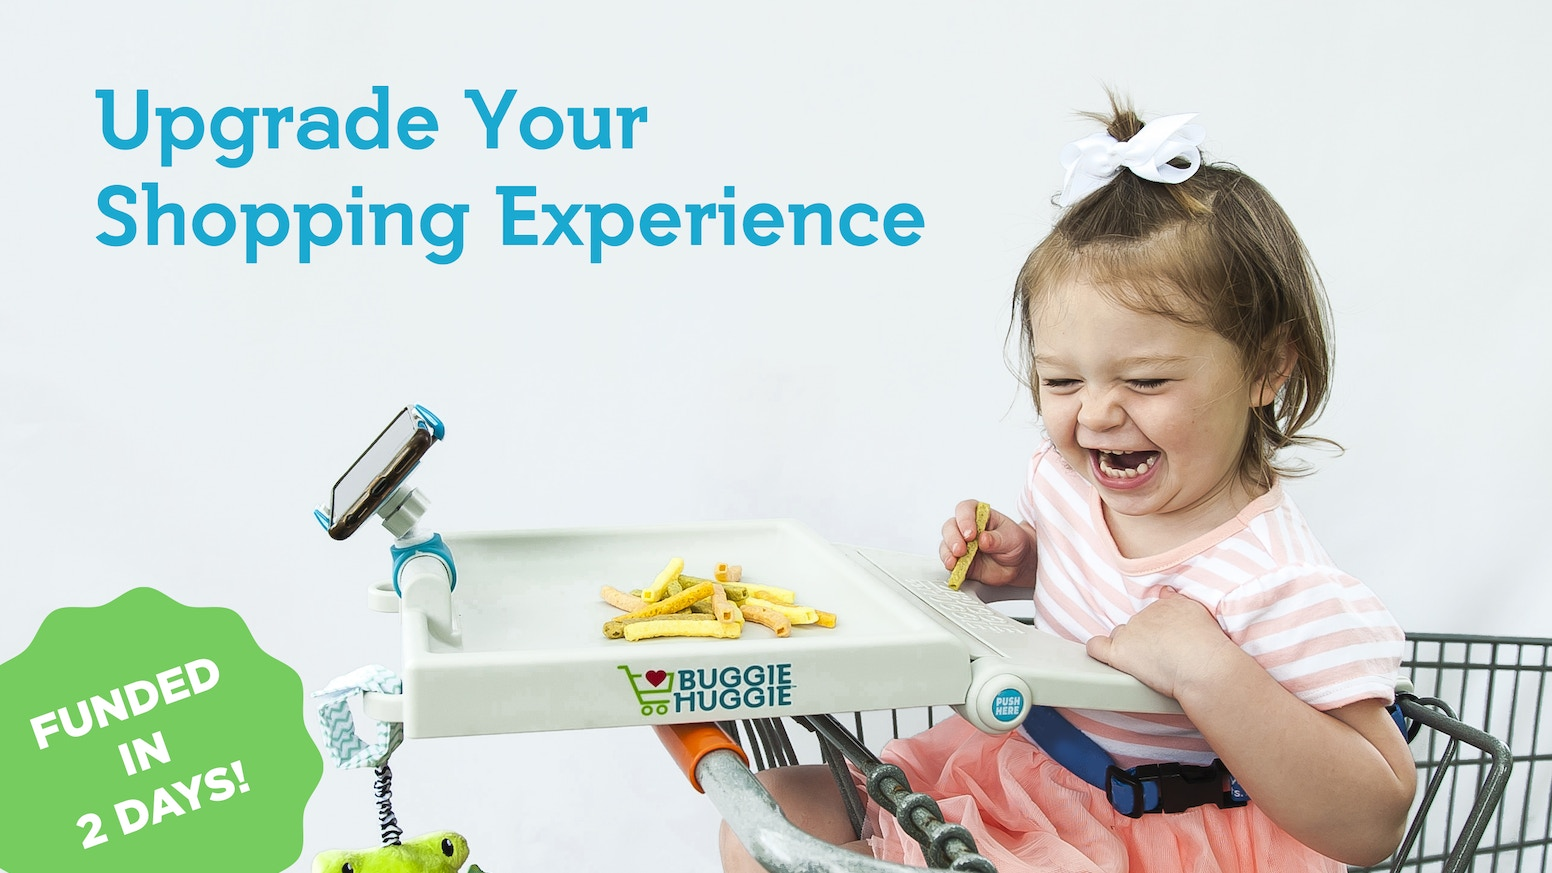 It's like a high-chair tray for your shopping cart that helps secure and entertain your kids while shopping!